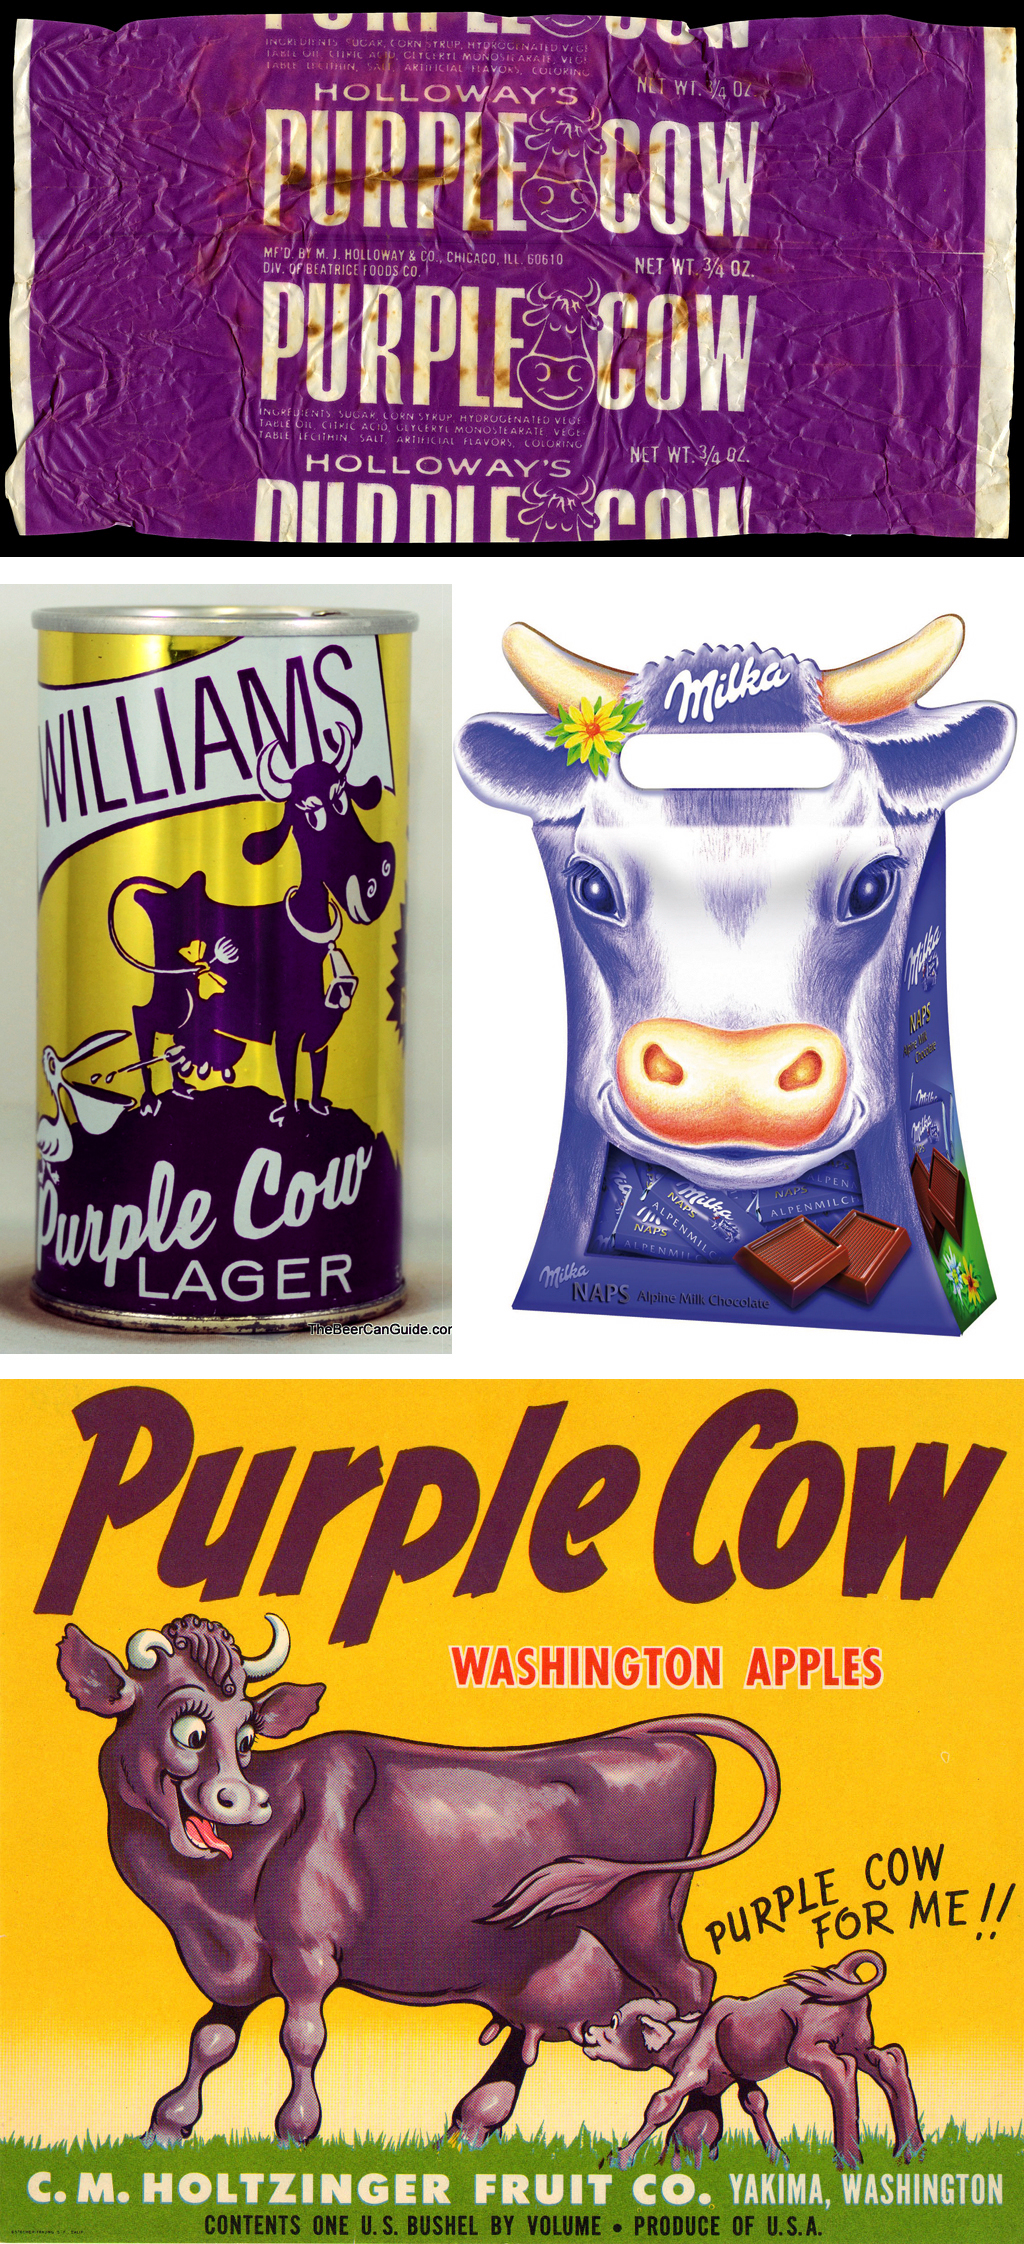 PurpleCow-Packaging